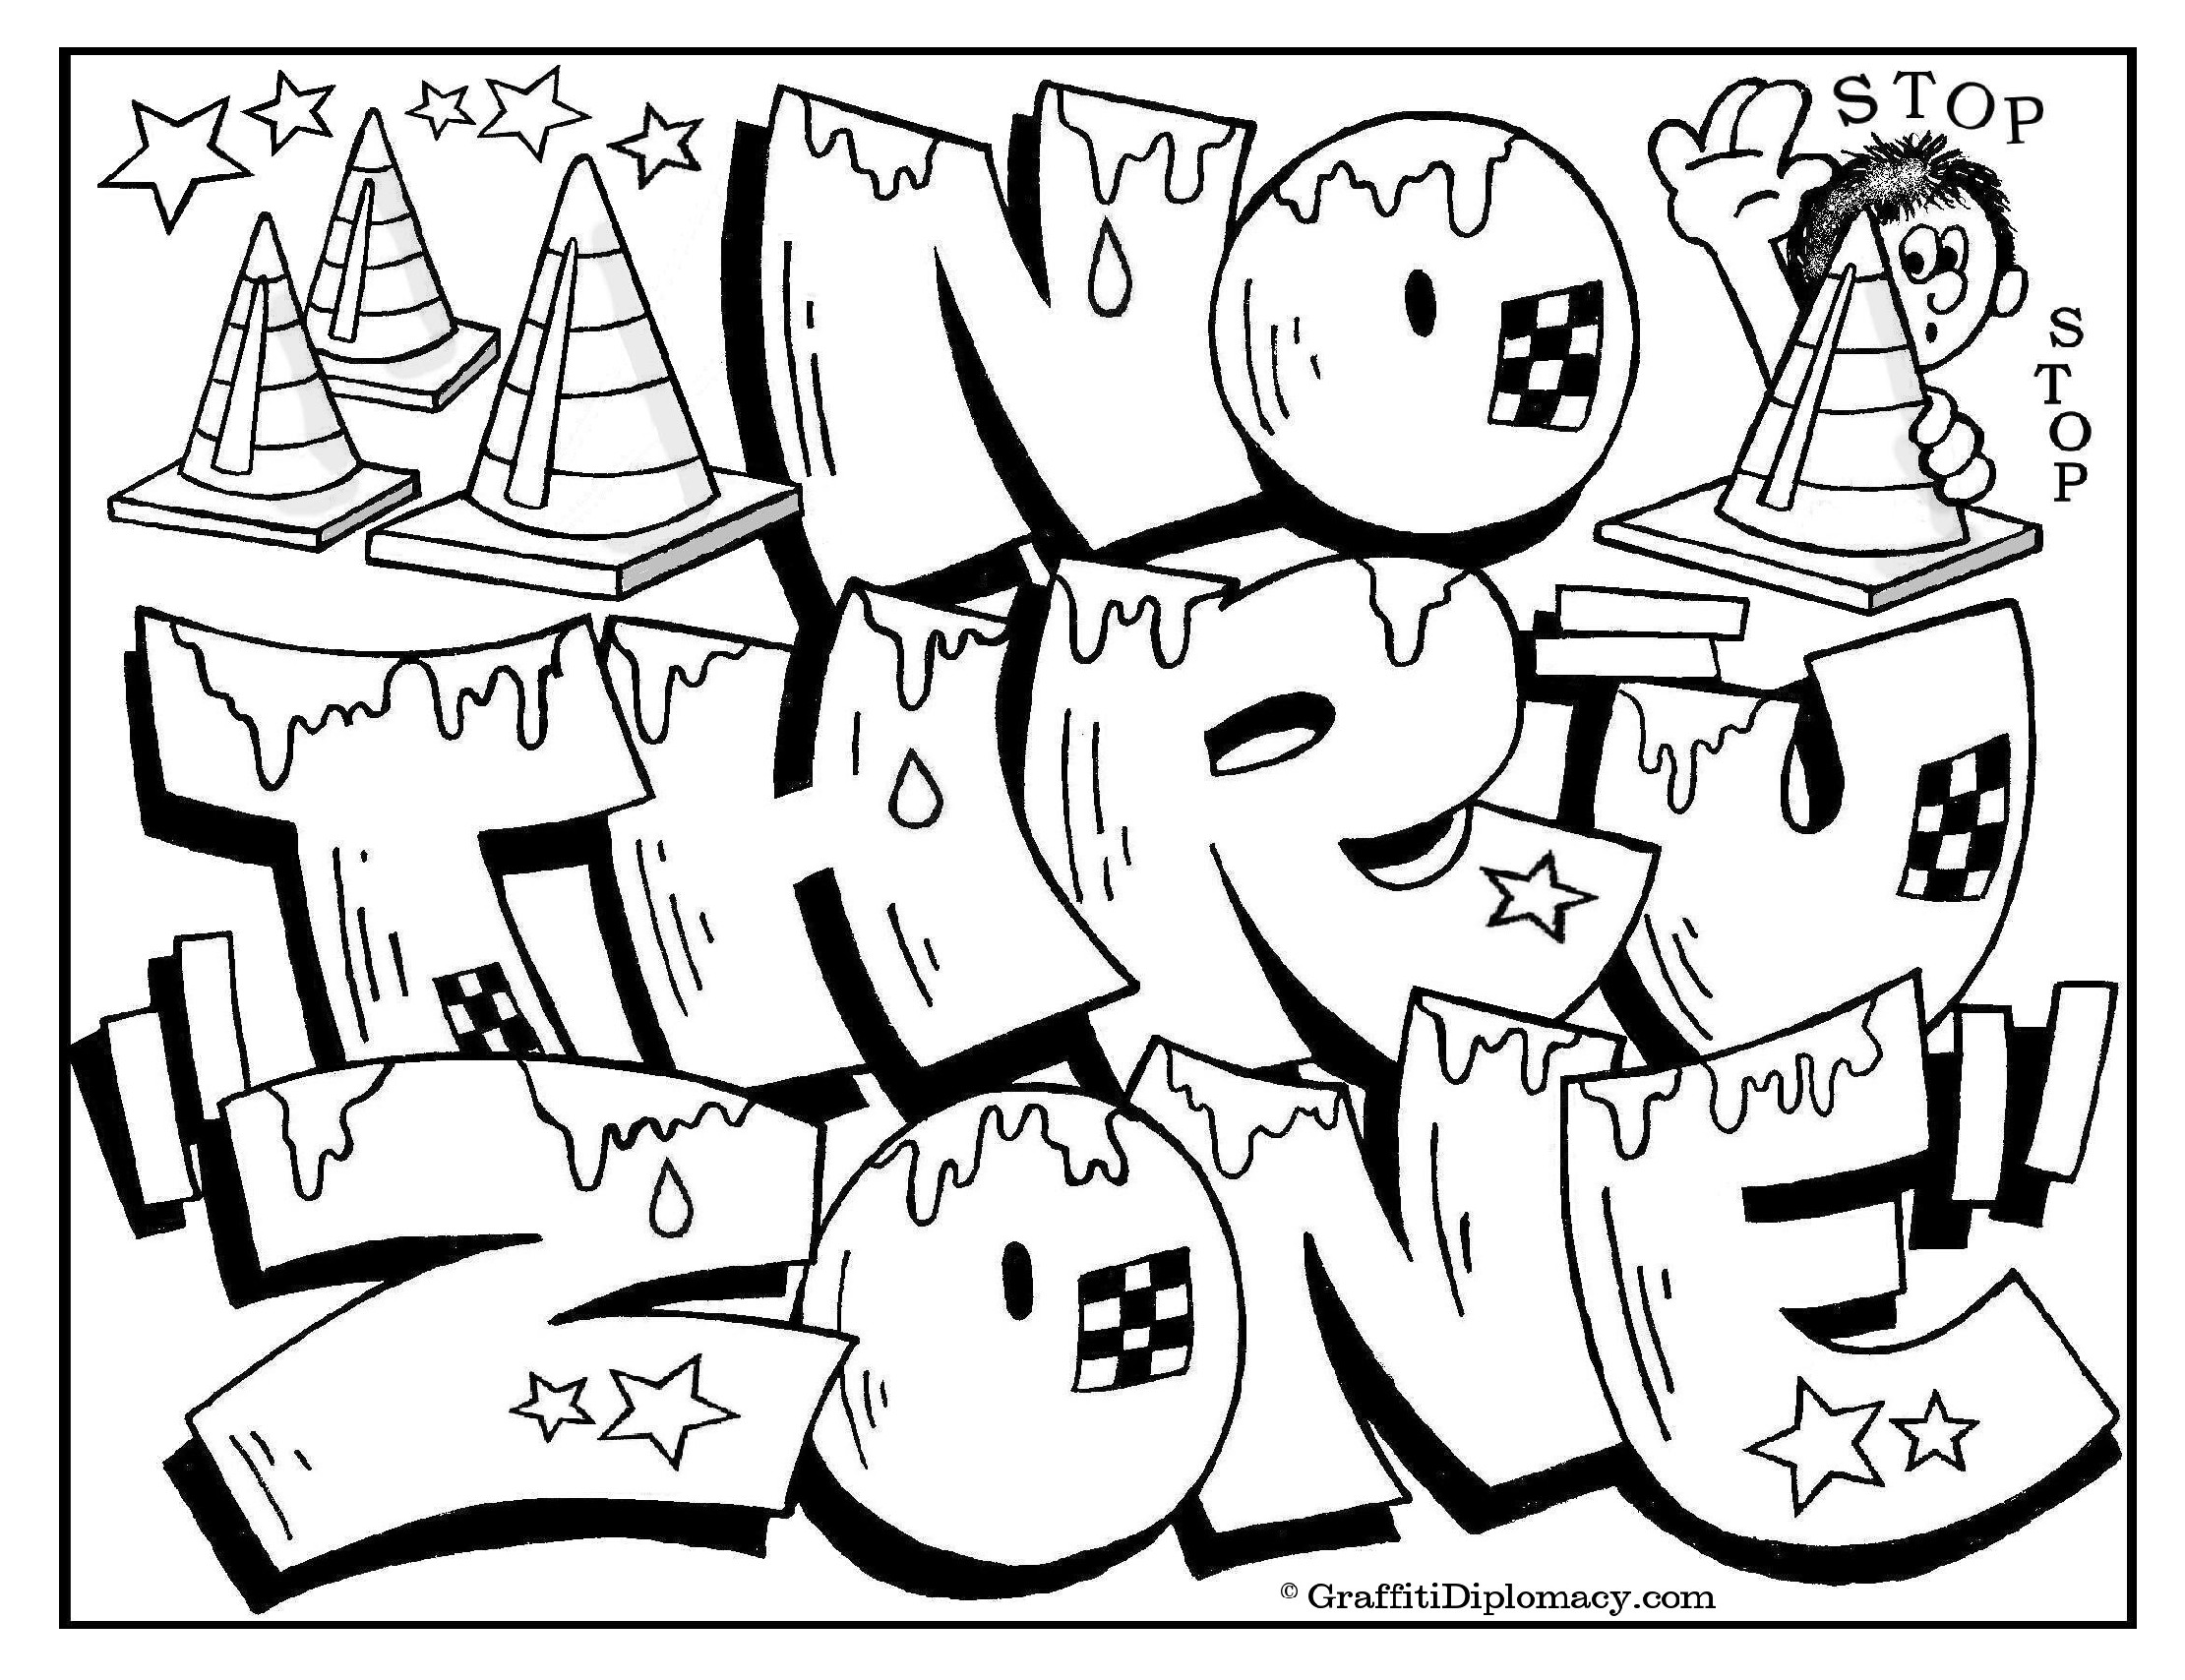 2221x1708 Graffiti Coloring Book Because Y's A Crooked Letter By Graffiti